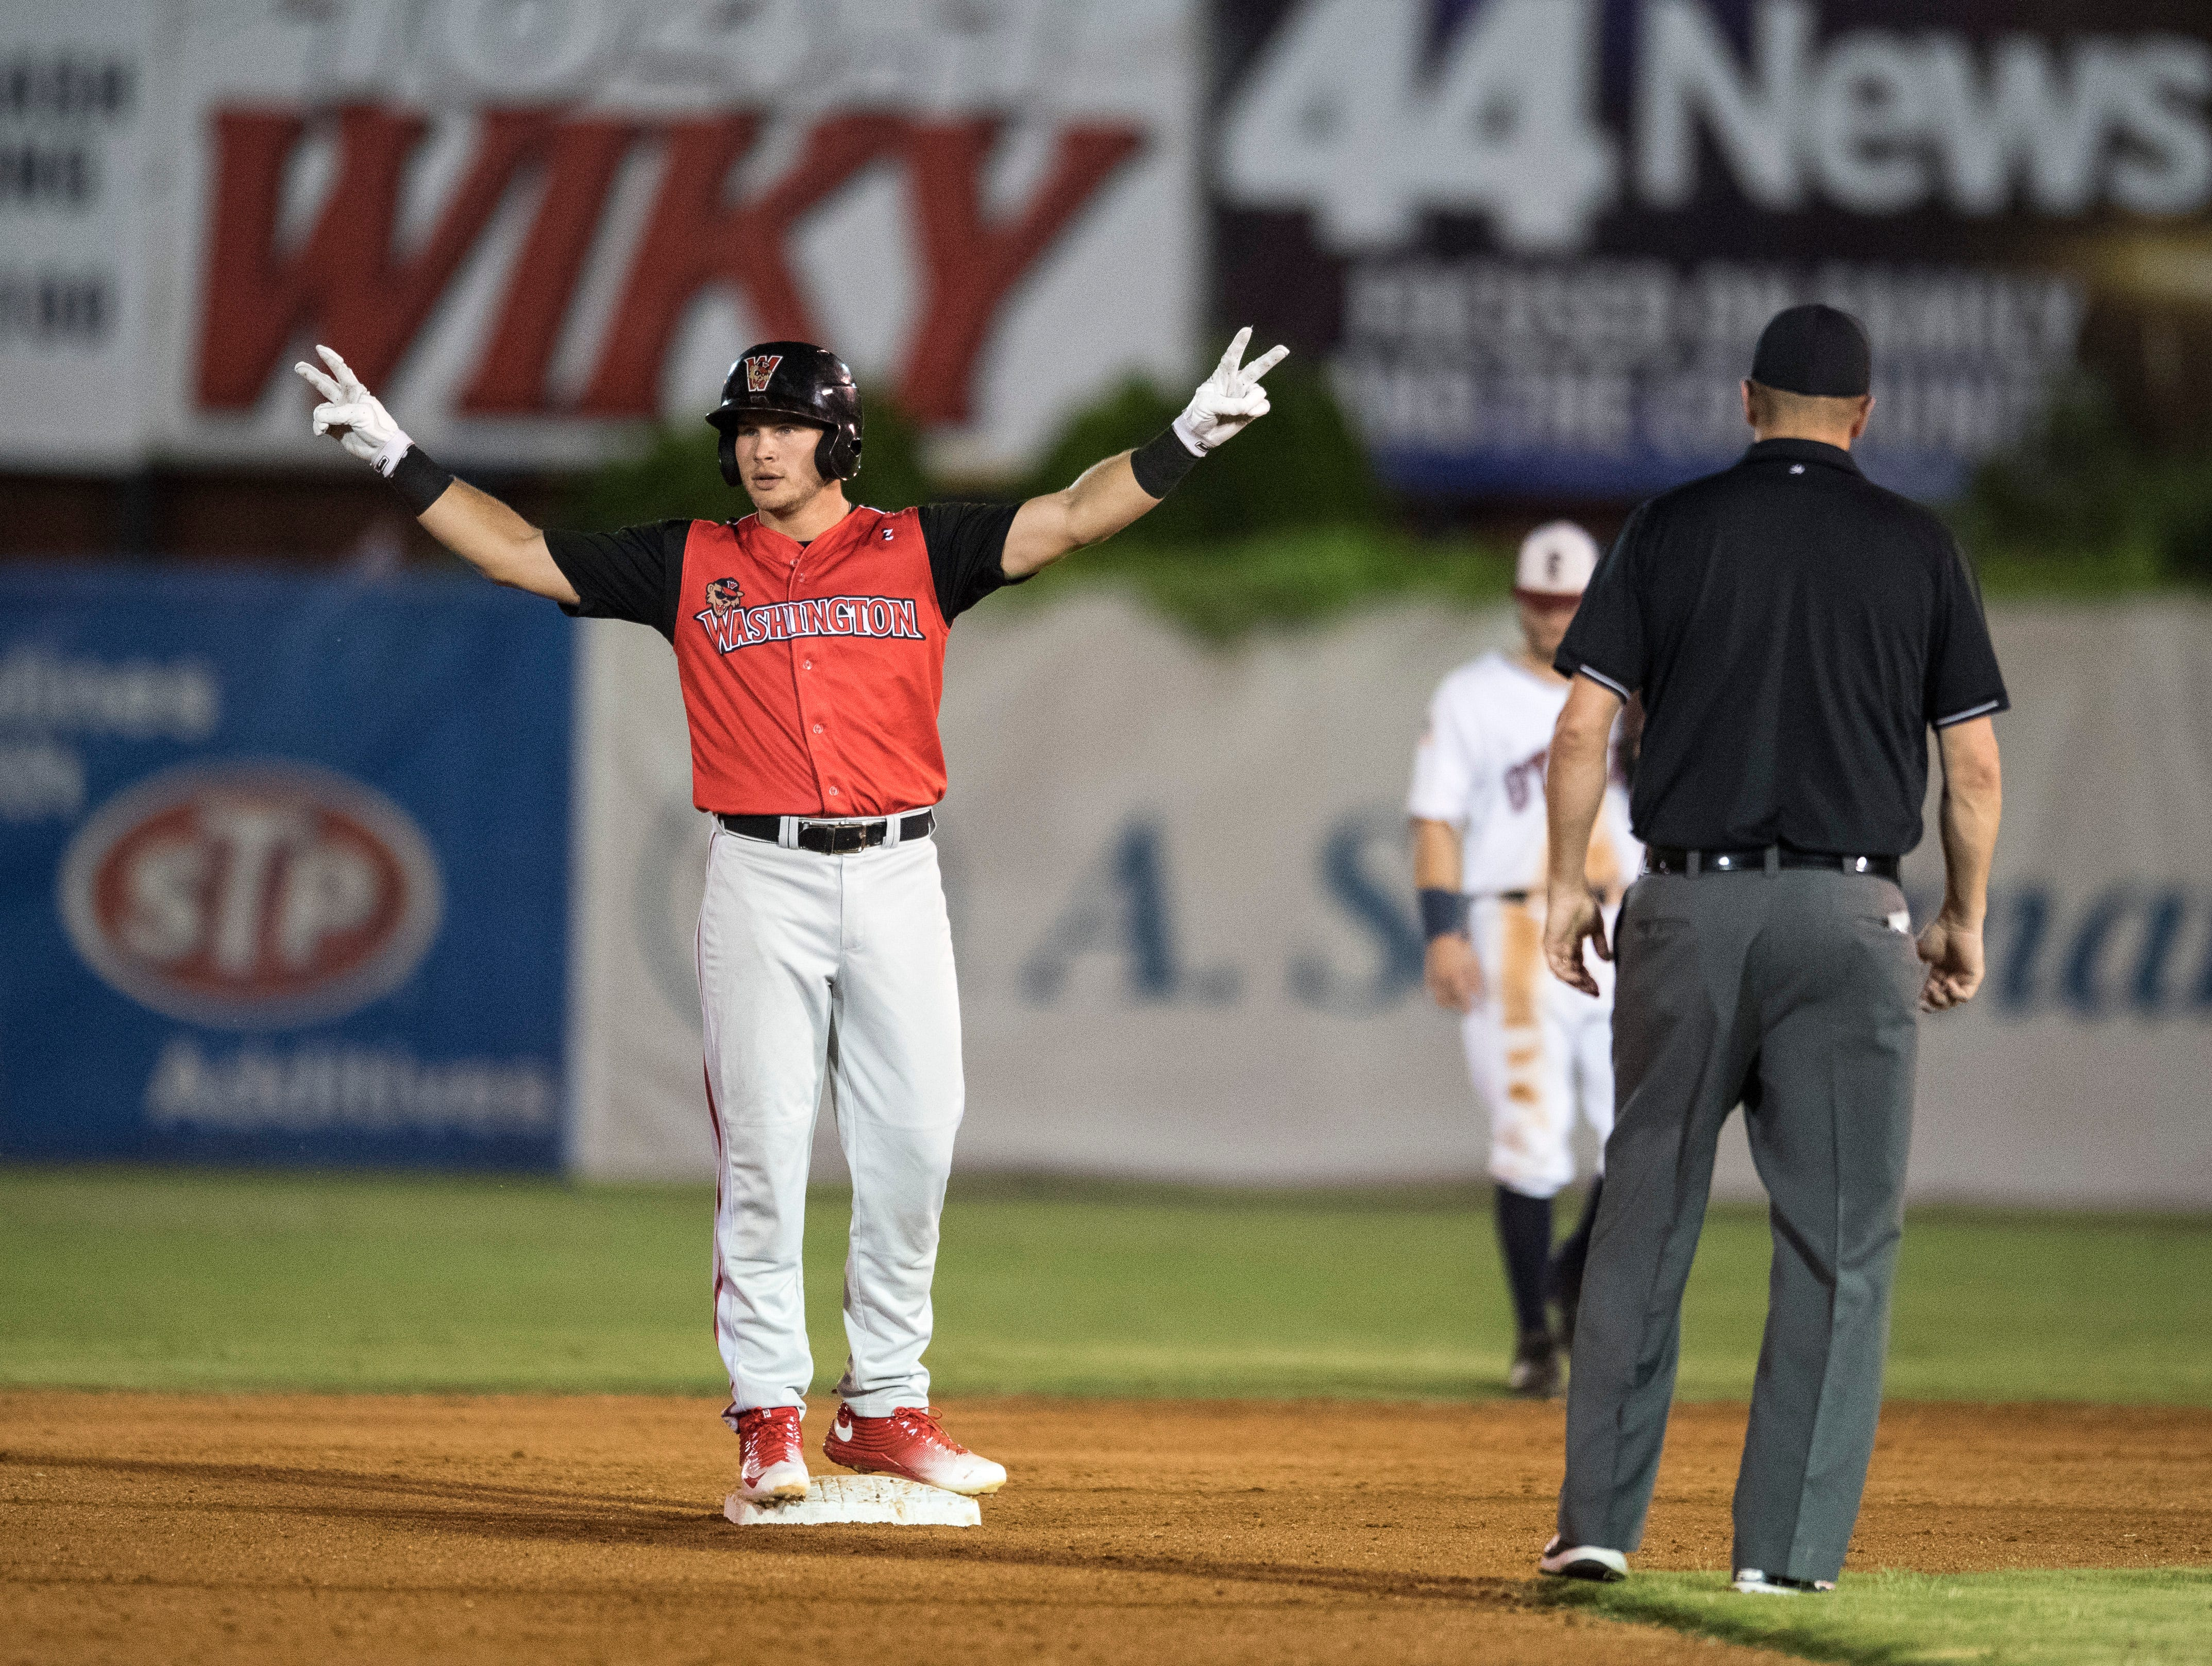 Washington's Dom Lero (7) signals to his teammates after taking second base during game one of the Frontier League Division Series at Bosse Field against the Evansville Otters Tuesday, September 4, 2018.